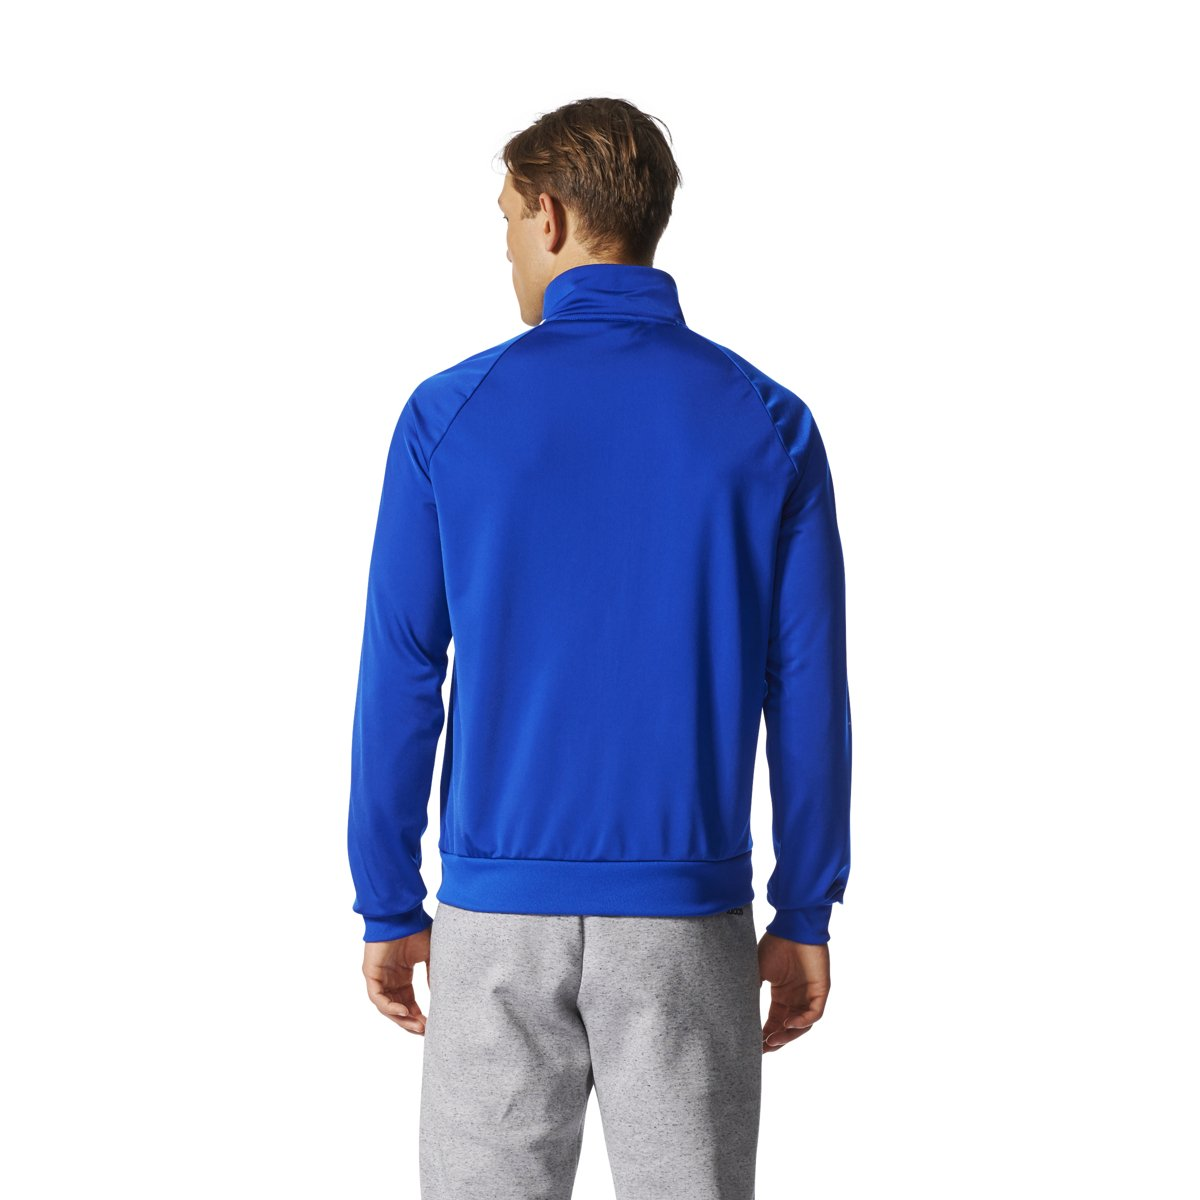 adidas Essentials 3S Tricot Track Jacket Men's All Sports S Collegiate Royal-White by adidas (Image #2)